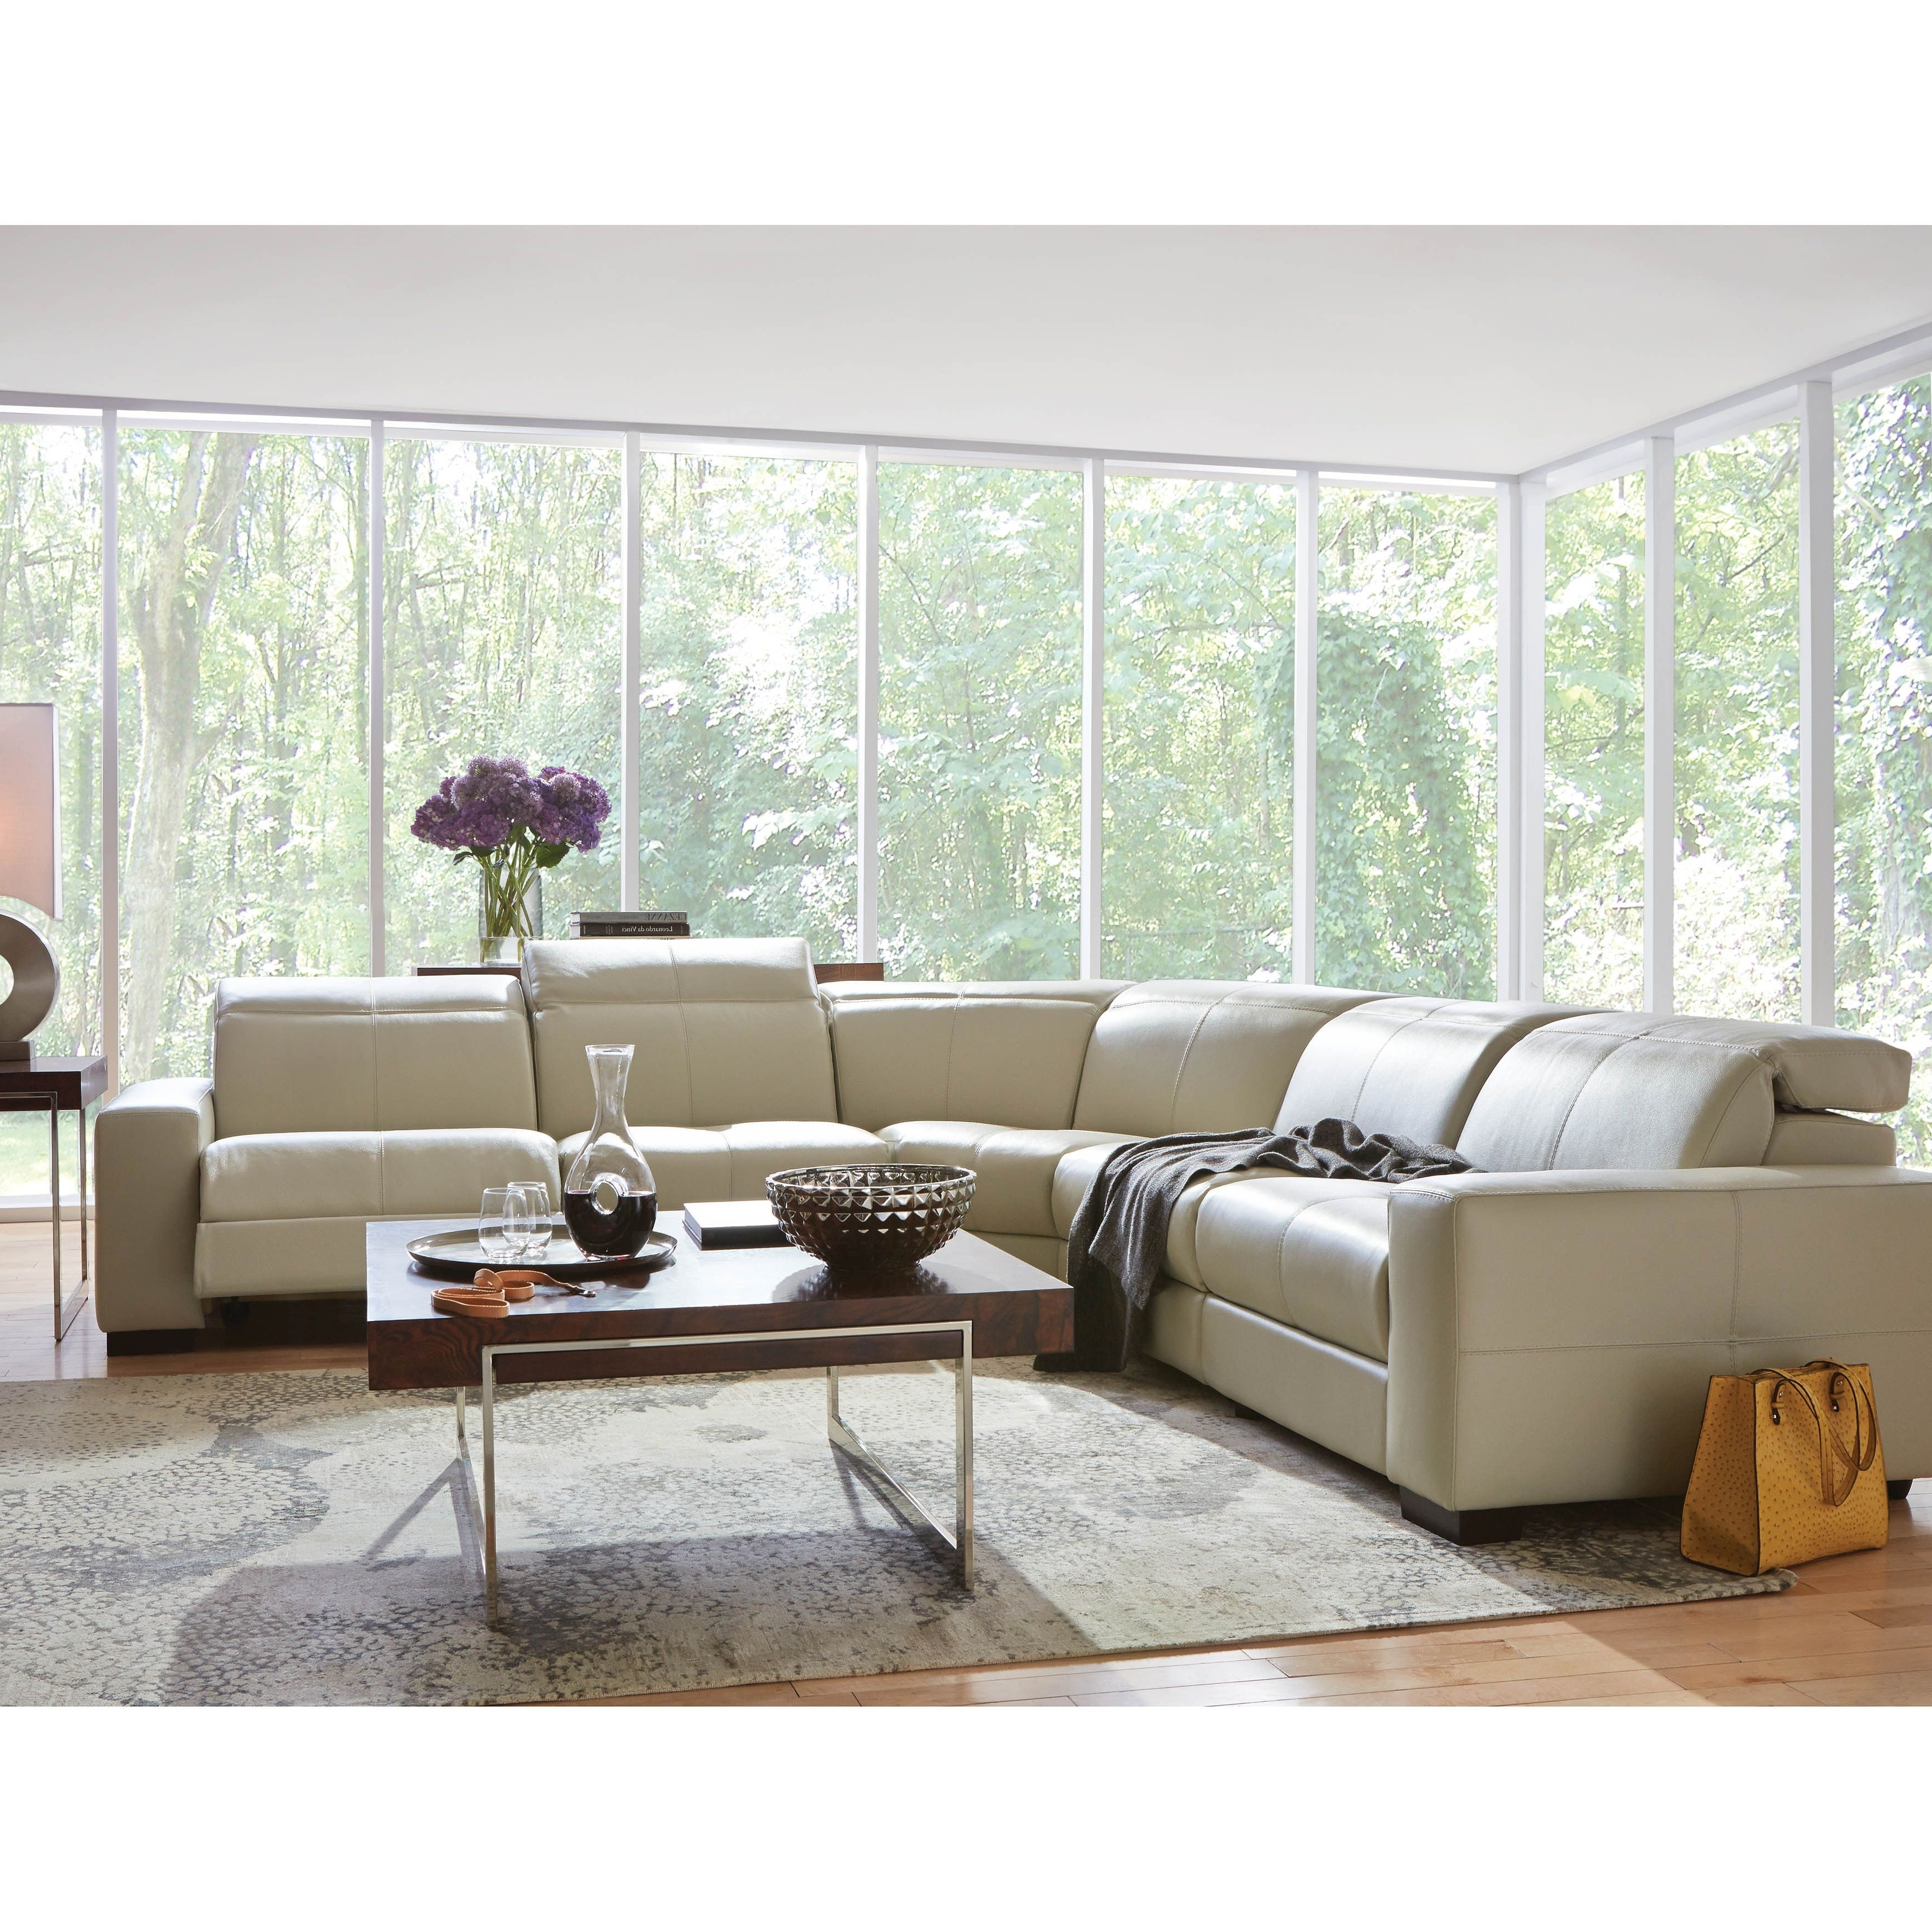 Cool, Clean, Contemporary And It Reclines! The Gianna Reclining With Regard To Fashionable Sectional Sofas Art Van (View 12 of 15)